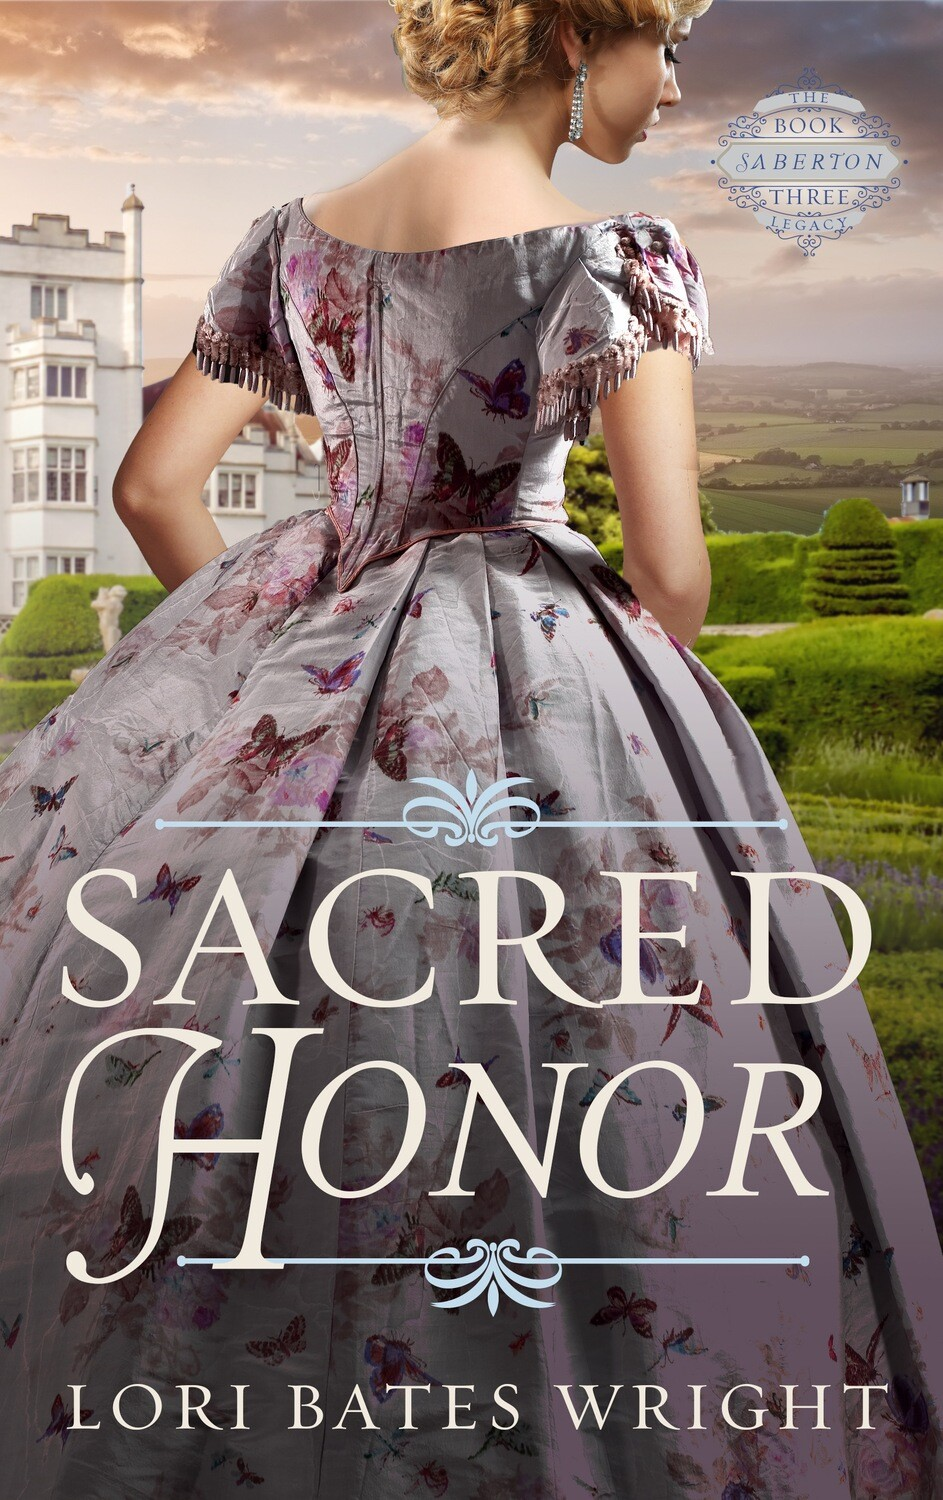 Sacred Honor (Signed) INCLUDES SHIPPING